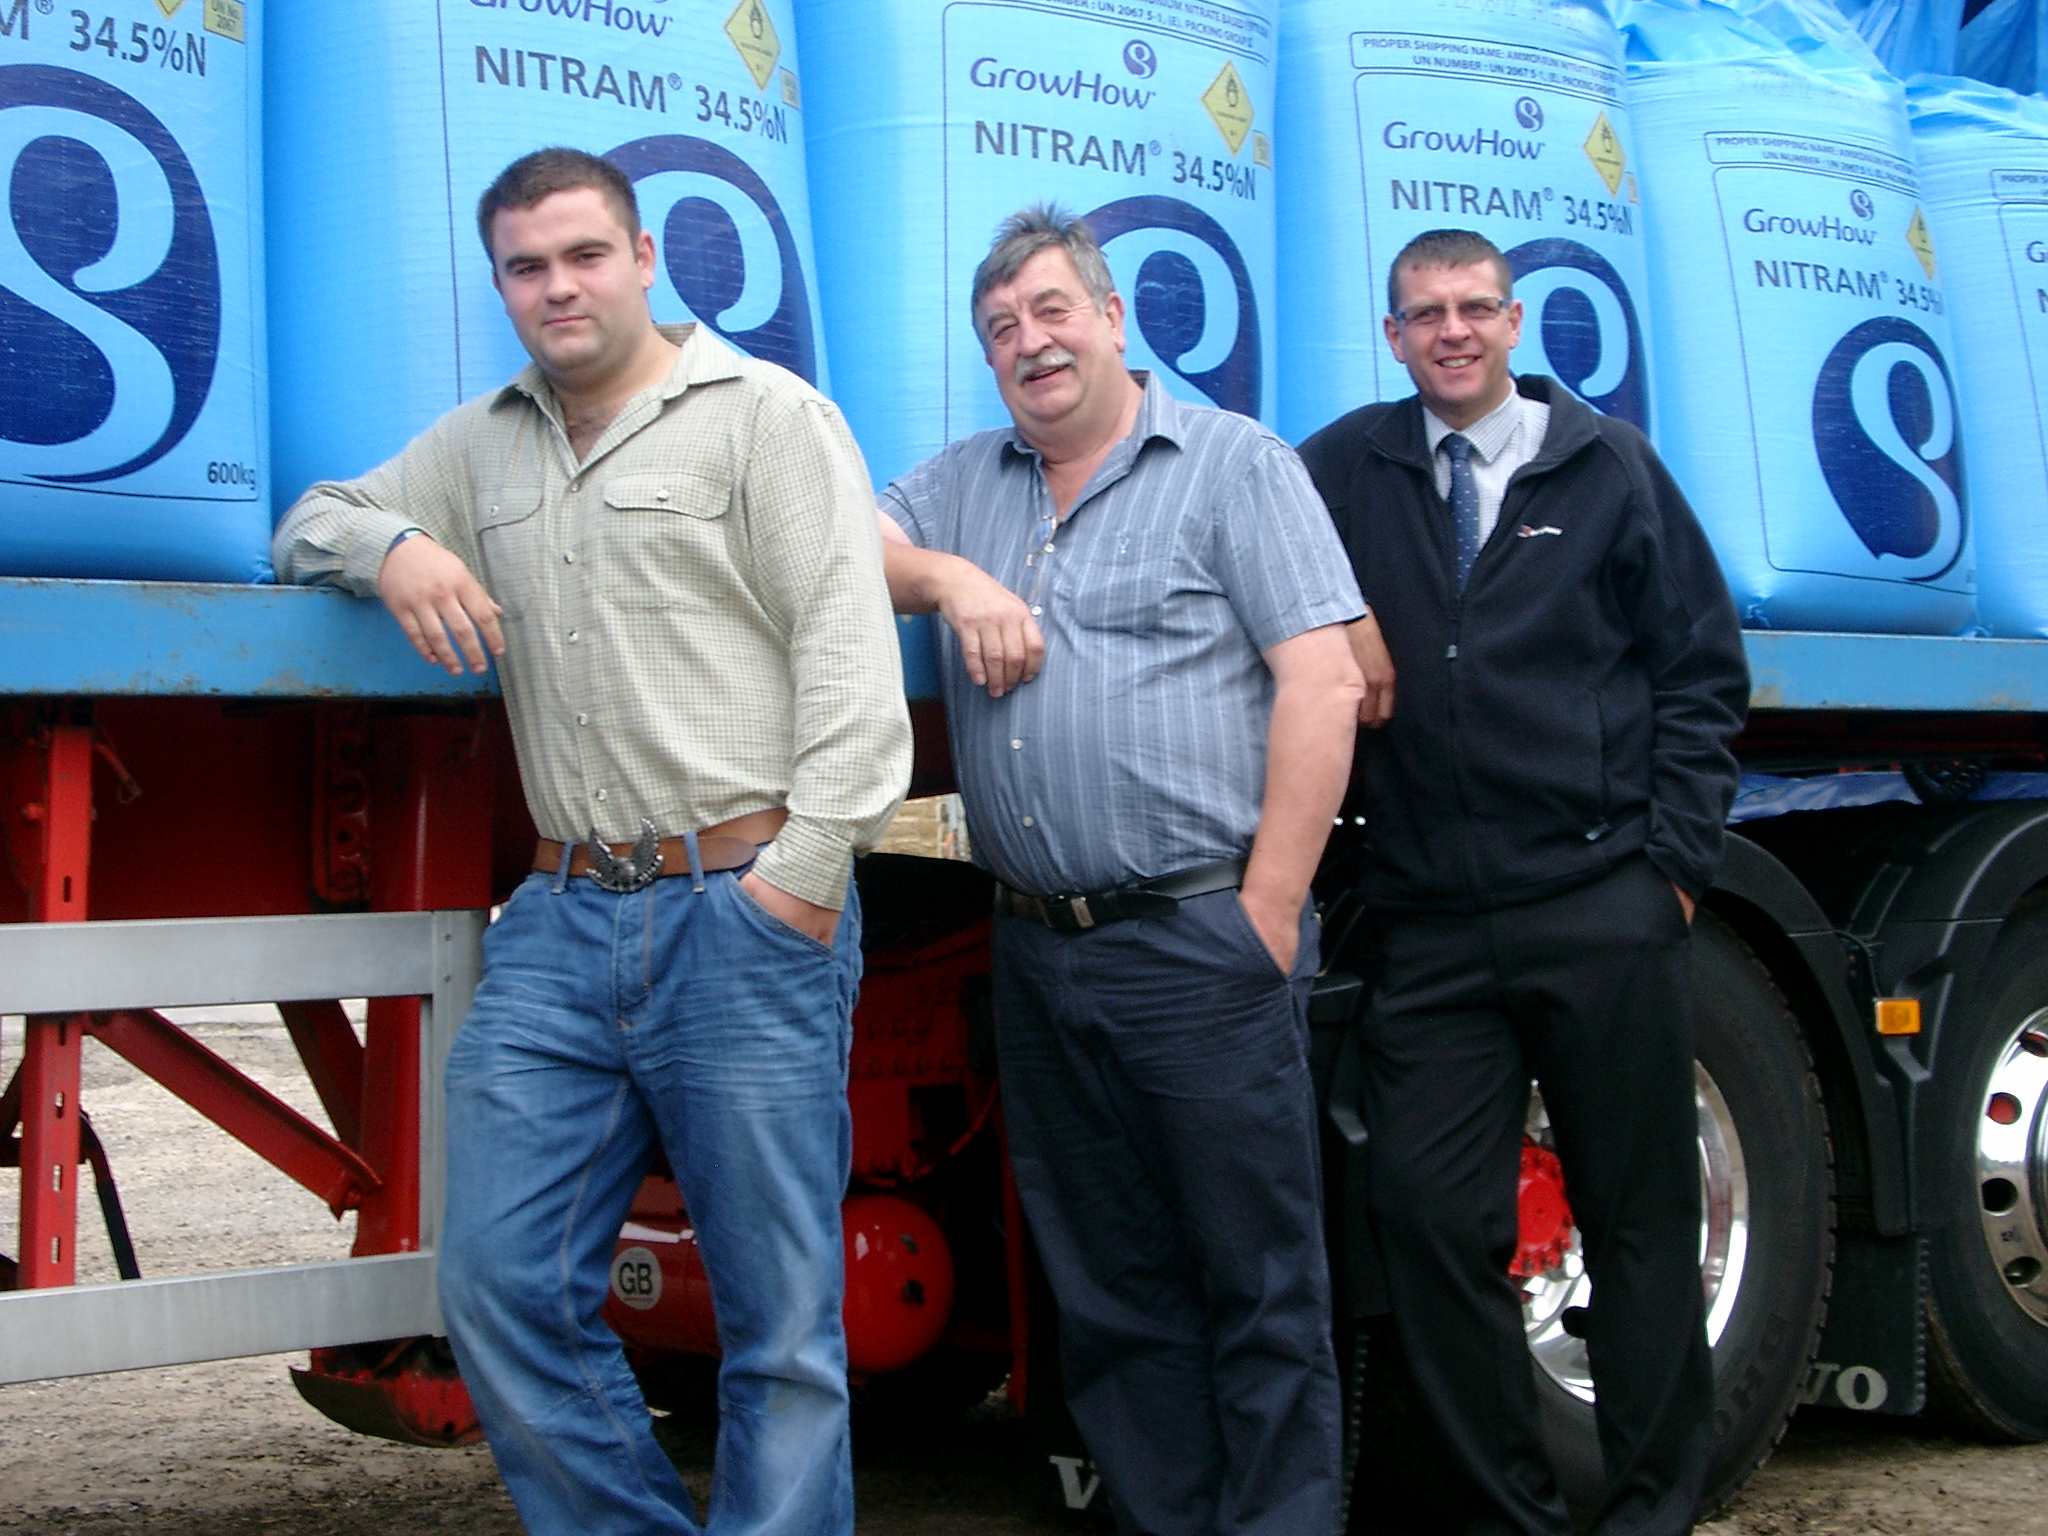 1.Left to right, winner Robert Wheelhouse with his father John Wheelhouse and Dave Towse GrowHow Business Adviser.